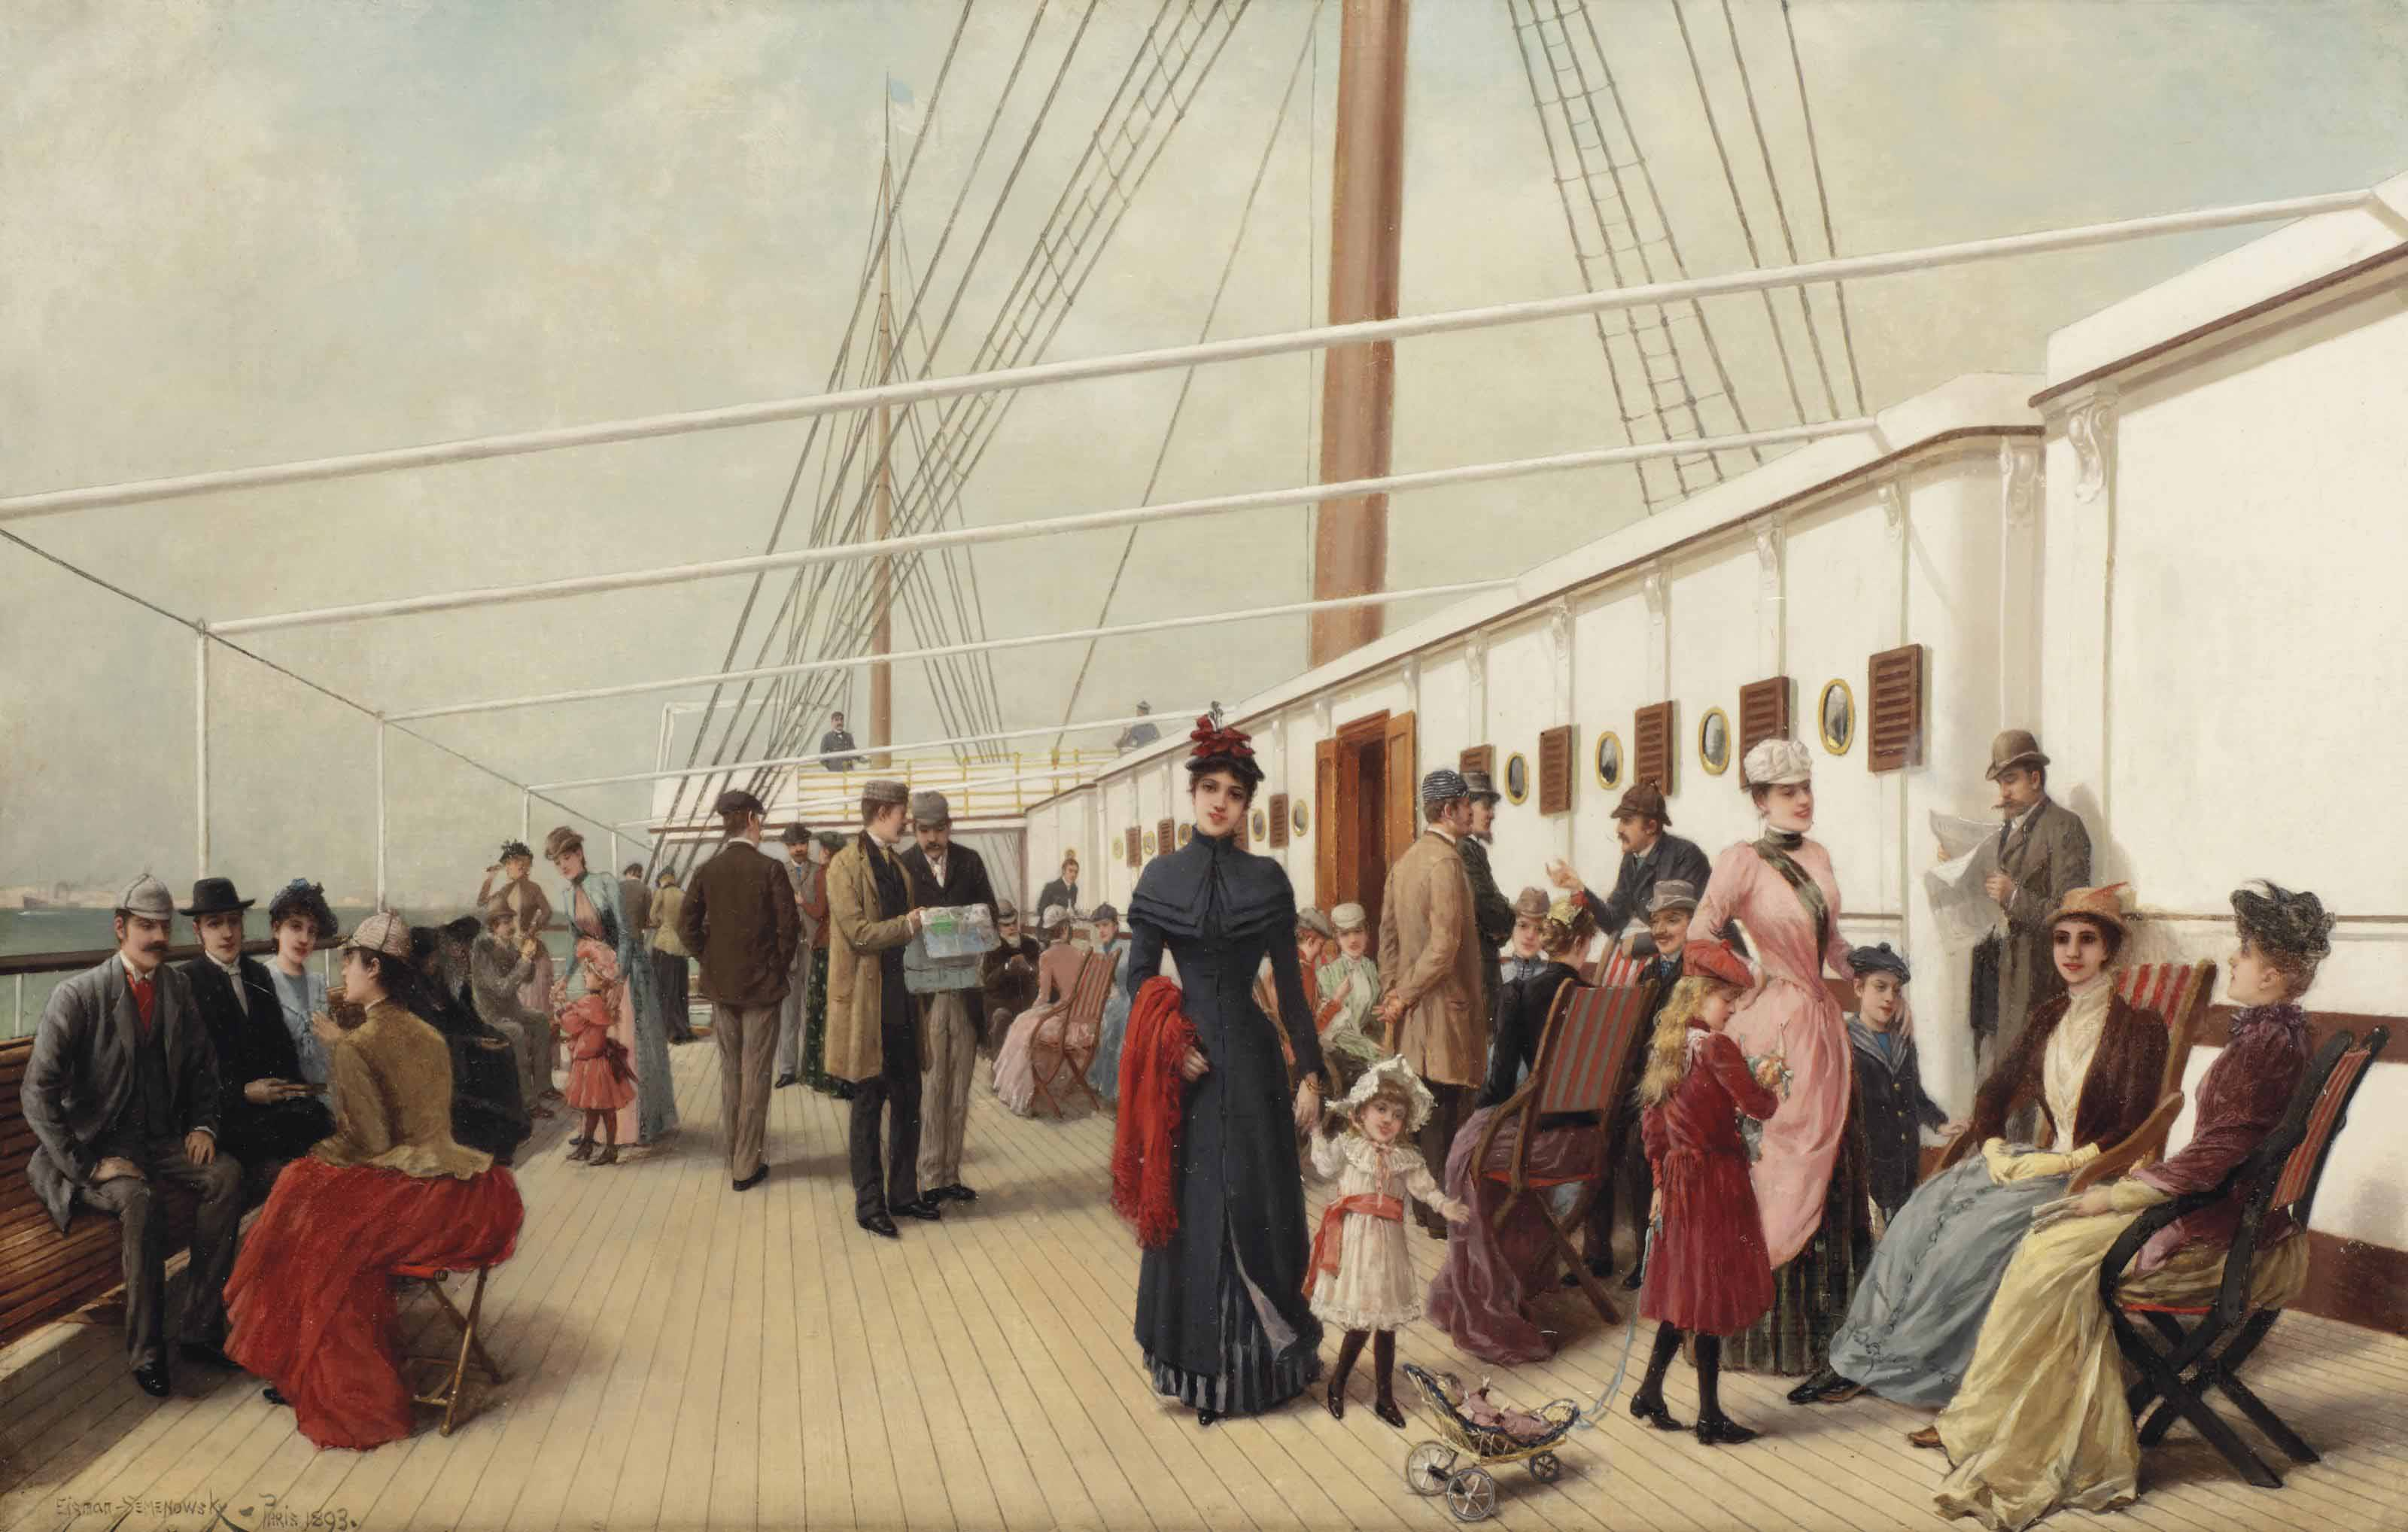 Elegant figures strolling on the upper deck of an ocean steamer